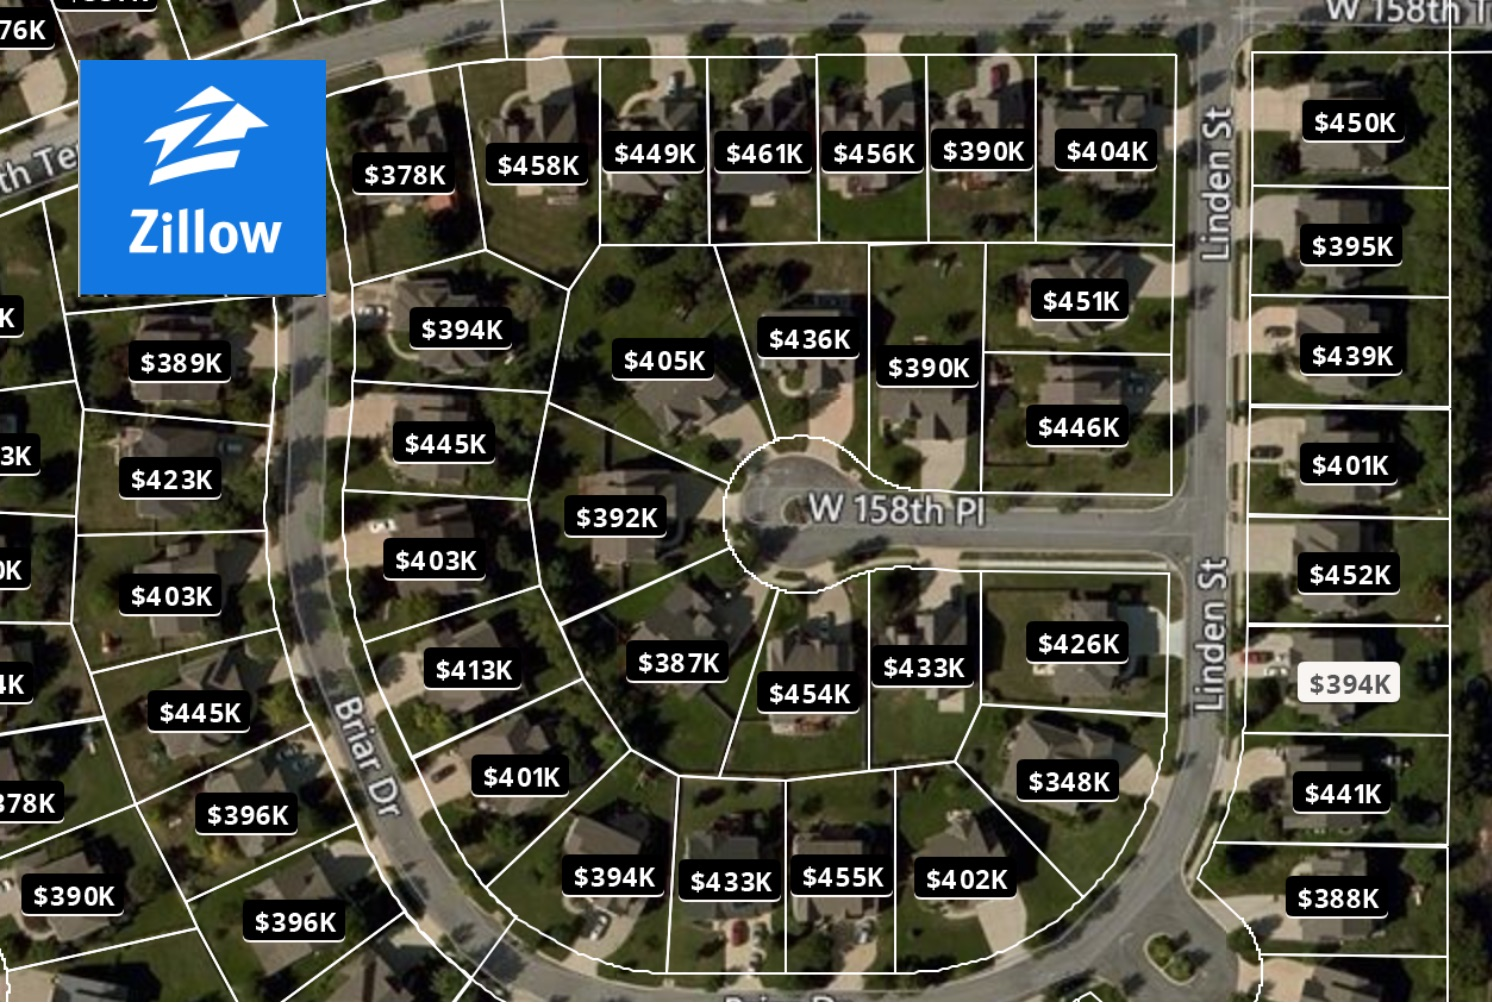 Are you using Zillow to determine your homes value? Zillow Home Values Map on zillow map view, google earth map, zillow find neighborhood, what's my house value map, zillow street maps, zillow real estate, zillow sold homes, zillow homes values estimates, zillow badge, zillow zestimates, zillow search by map, zillow homes for rent, what's my home worth map, zillow earth, real map, zillow address map, home depot map, zillow maps neighborhood, property value map, kiro 7 map,